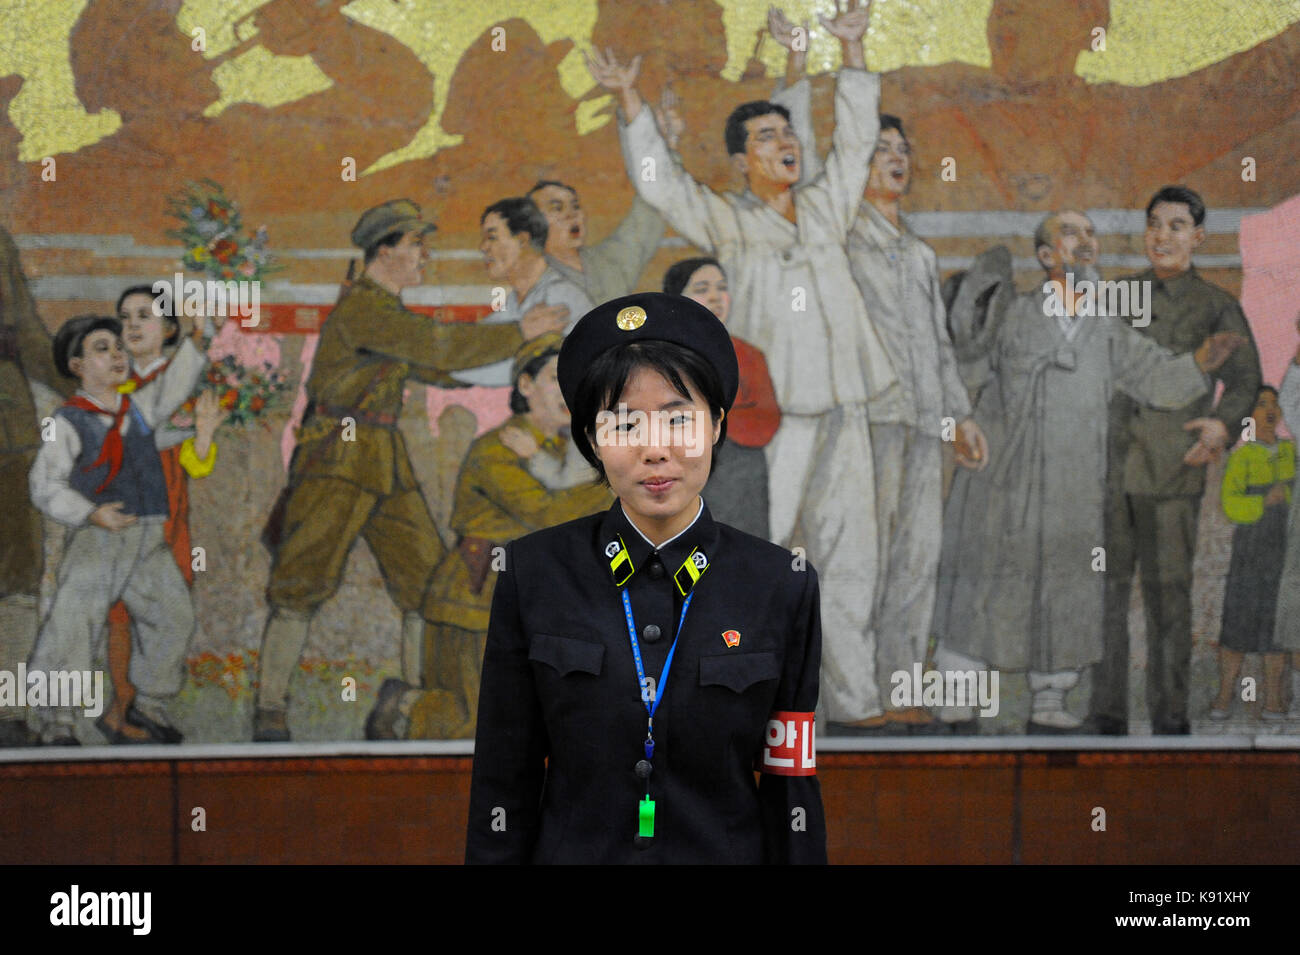 09.08.2012, Pyongyang, North Korea, Asia - A platform guard stands in front of a huge propaganda mural inside a - Stock Image